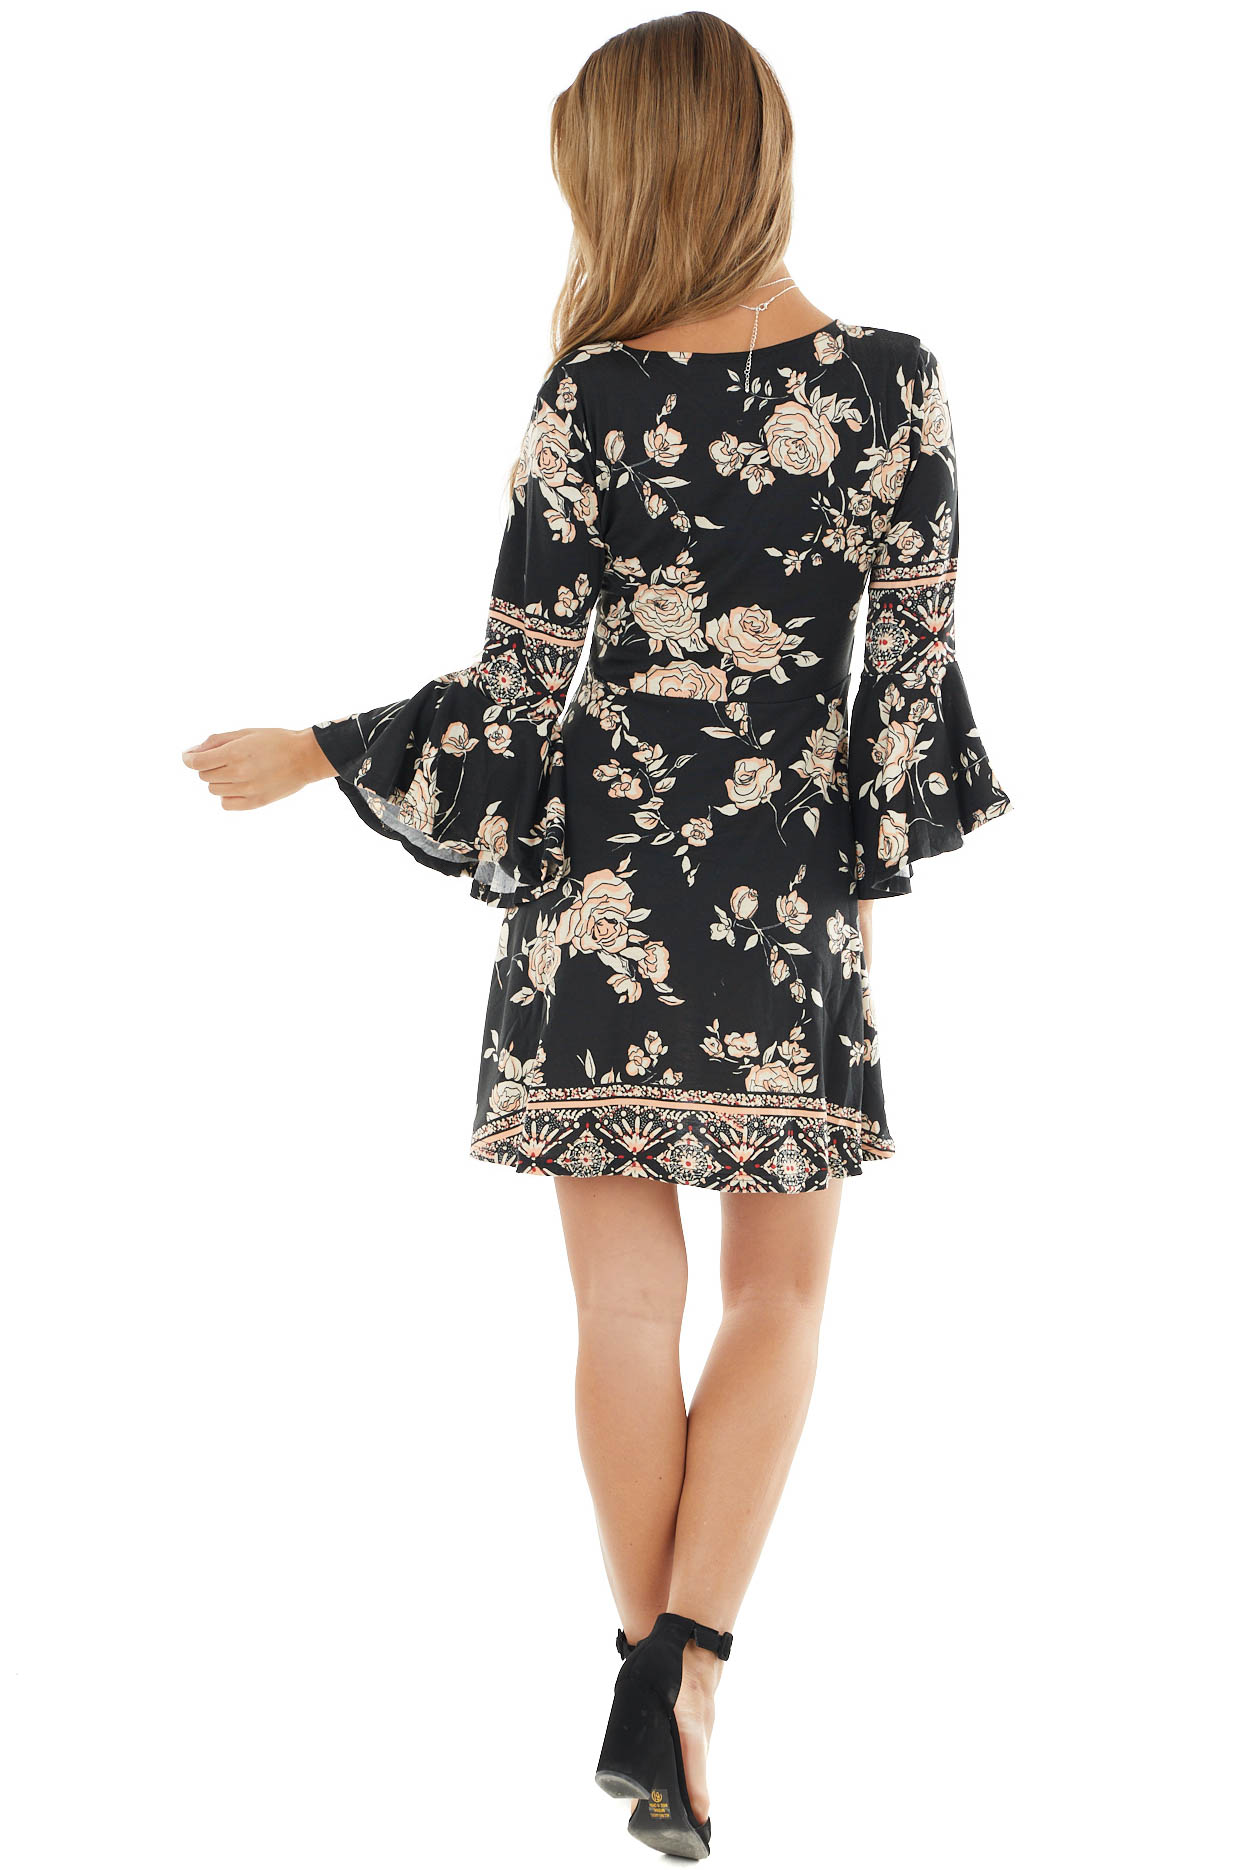 Black and Salmon Floral Baby Doll Dress with Ruffle Sleeve